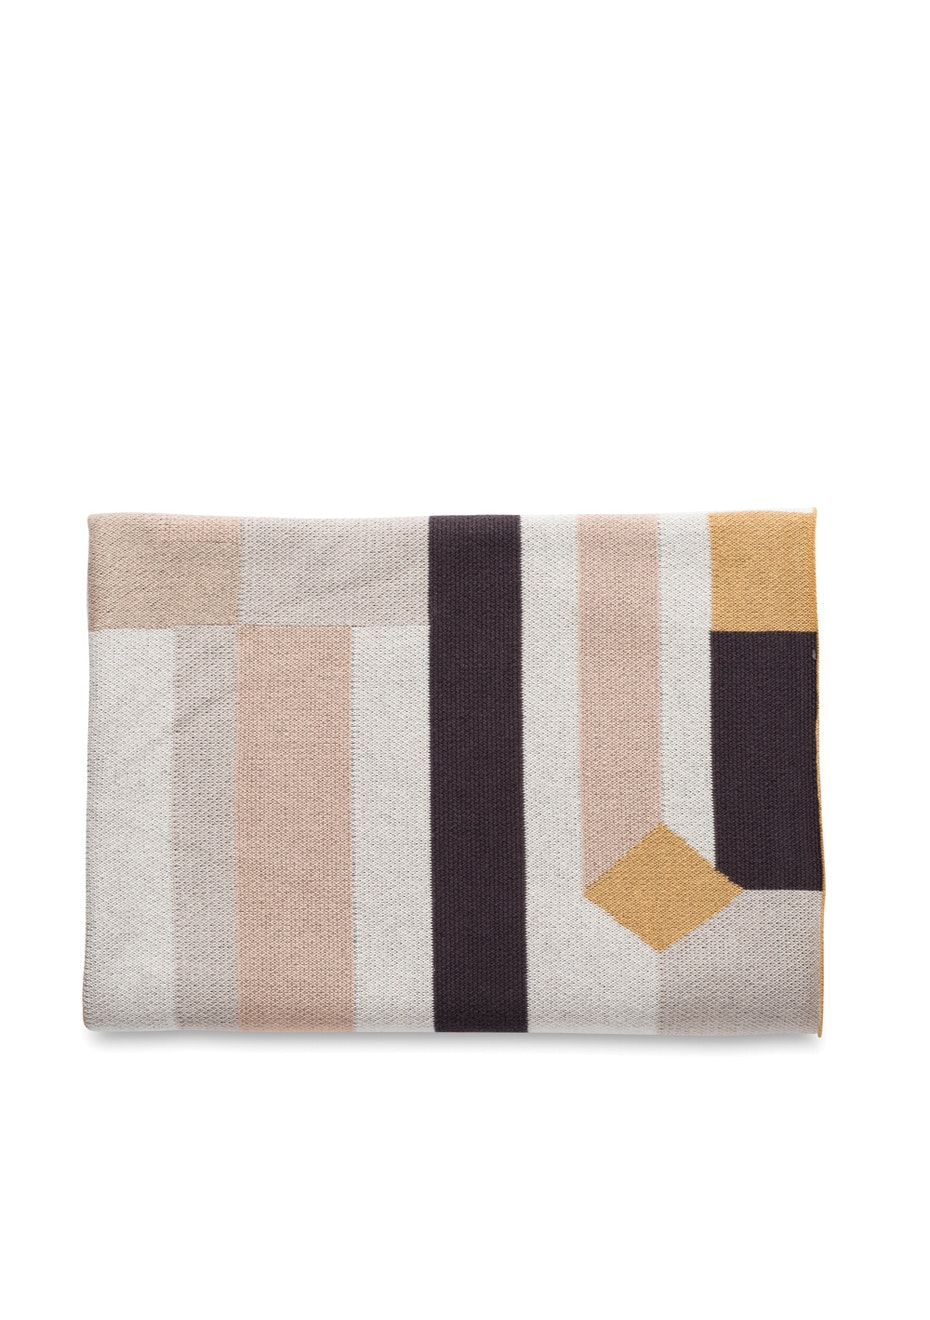 Citta - Casa Cotton Knit Throw - Multi